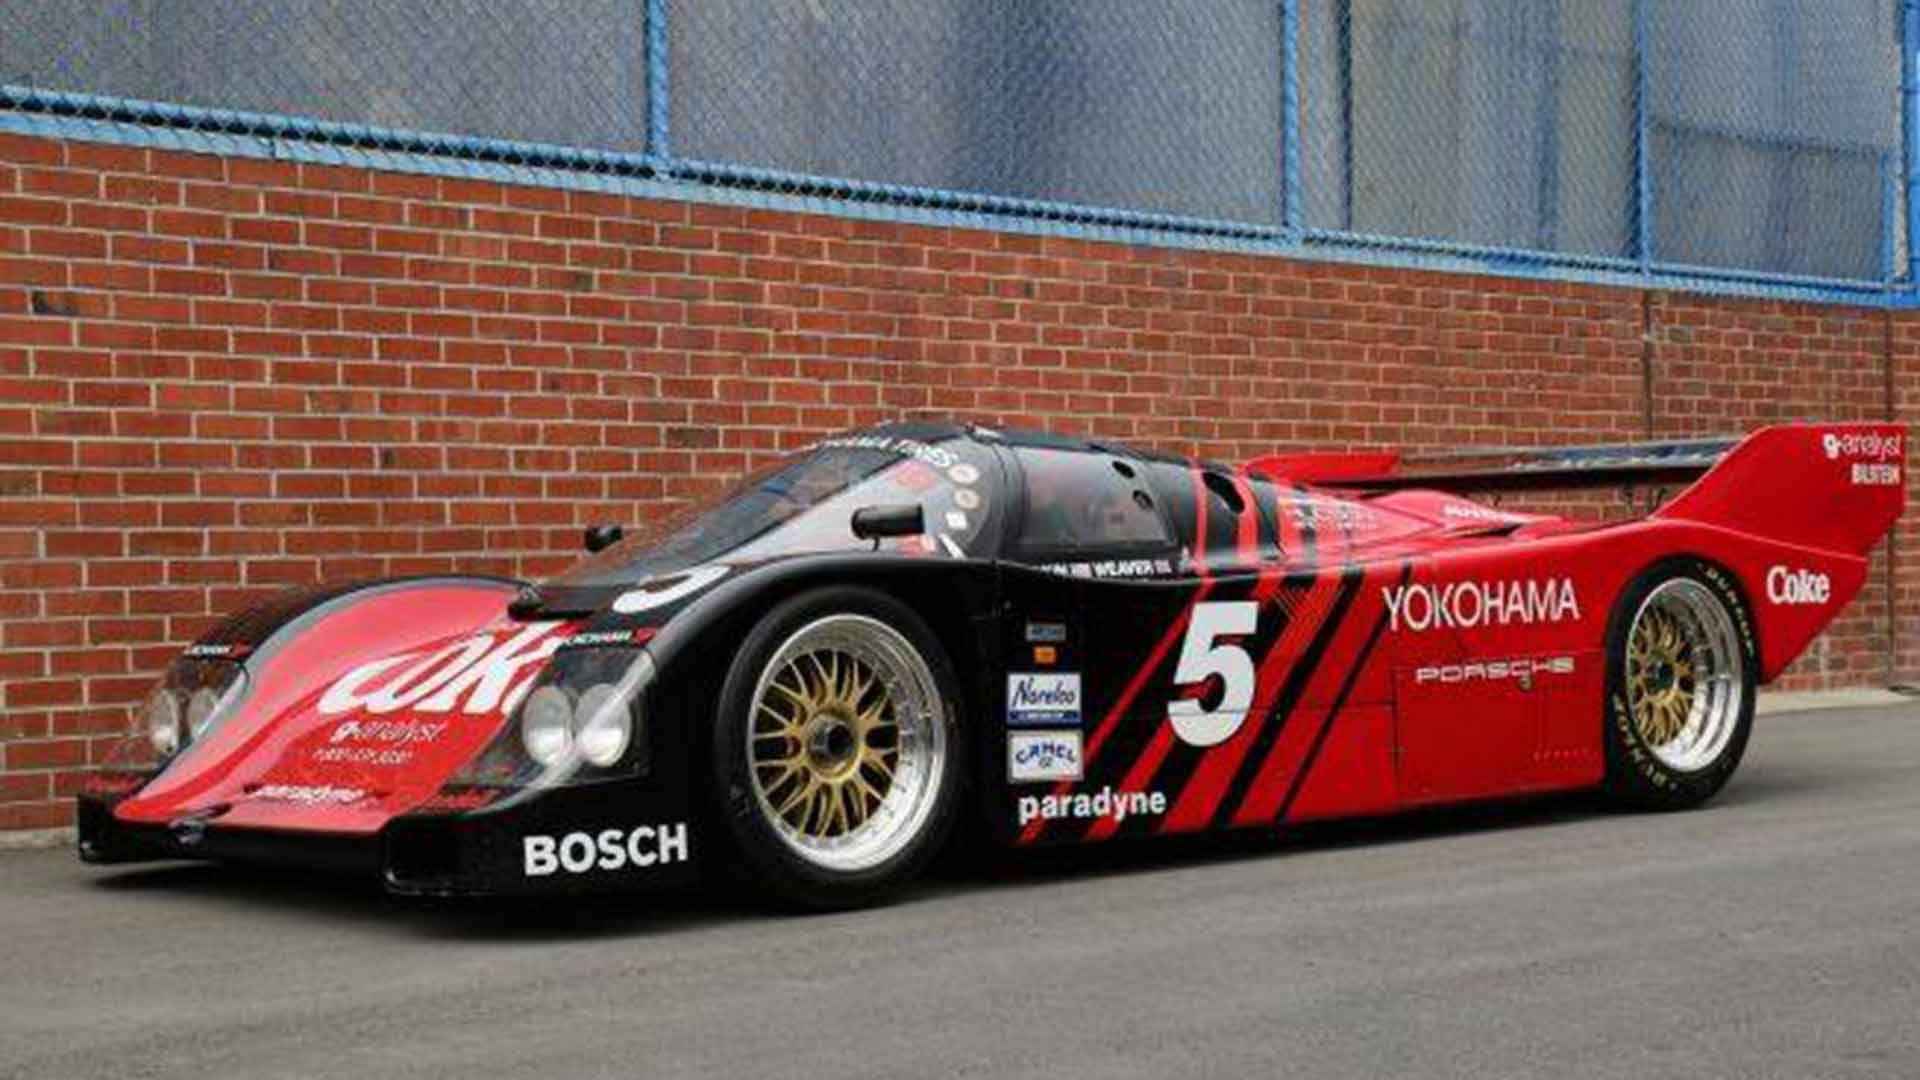 1987 Porsche 962 Race Car Needs New Owner Willing To Pay $1.27M